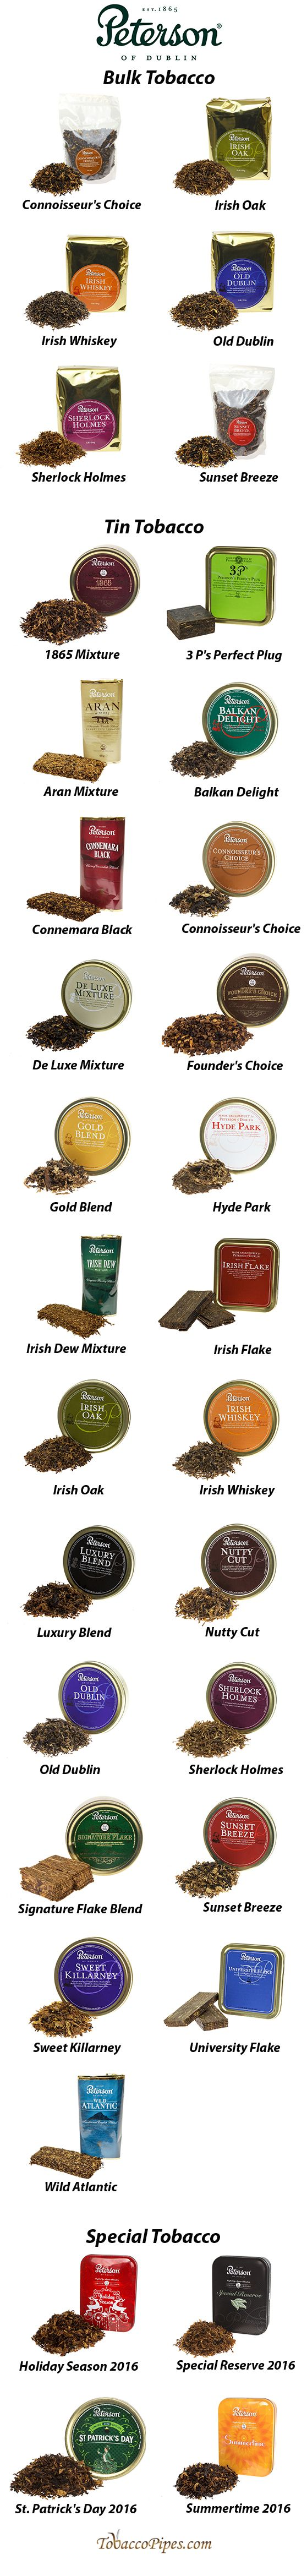 Peterson Tobacco Blends